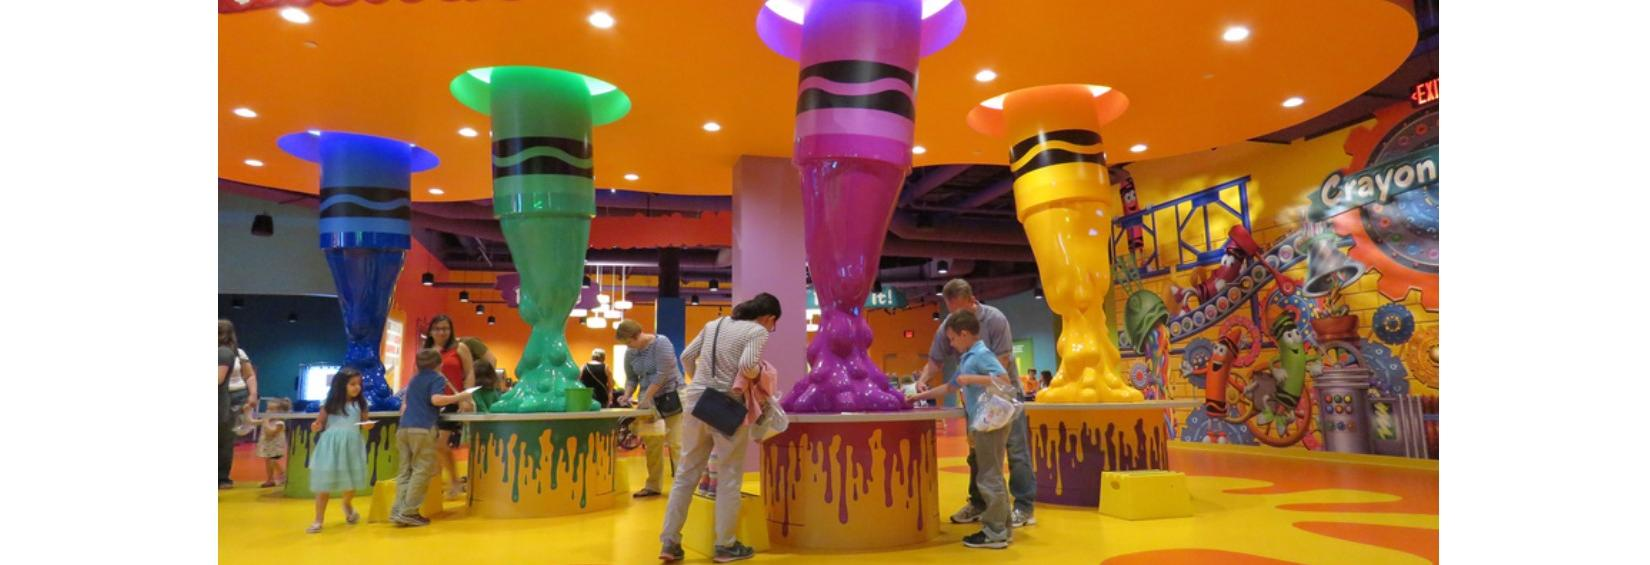 CRAYOLA EXPERIENCE in Plano, TX - Local Coupons September 24, 2018